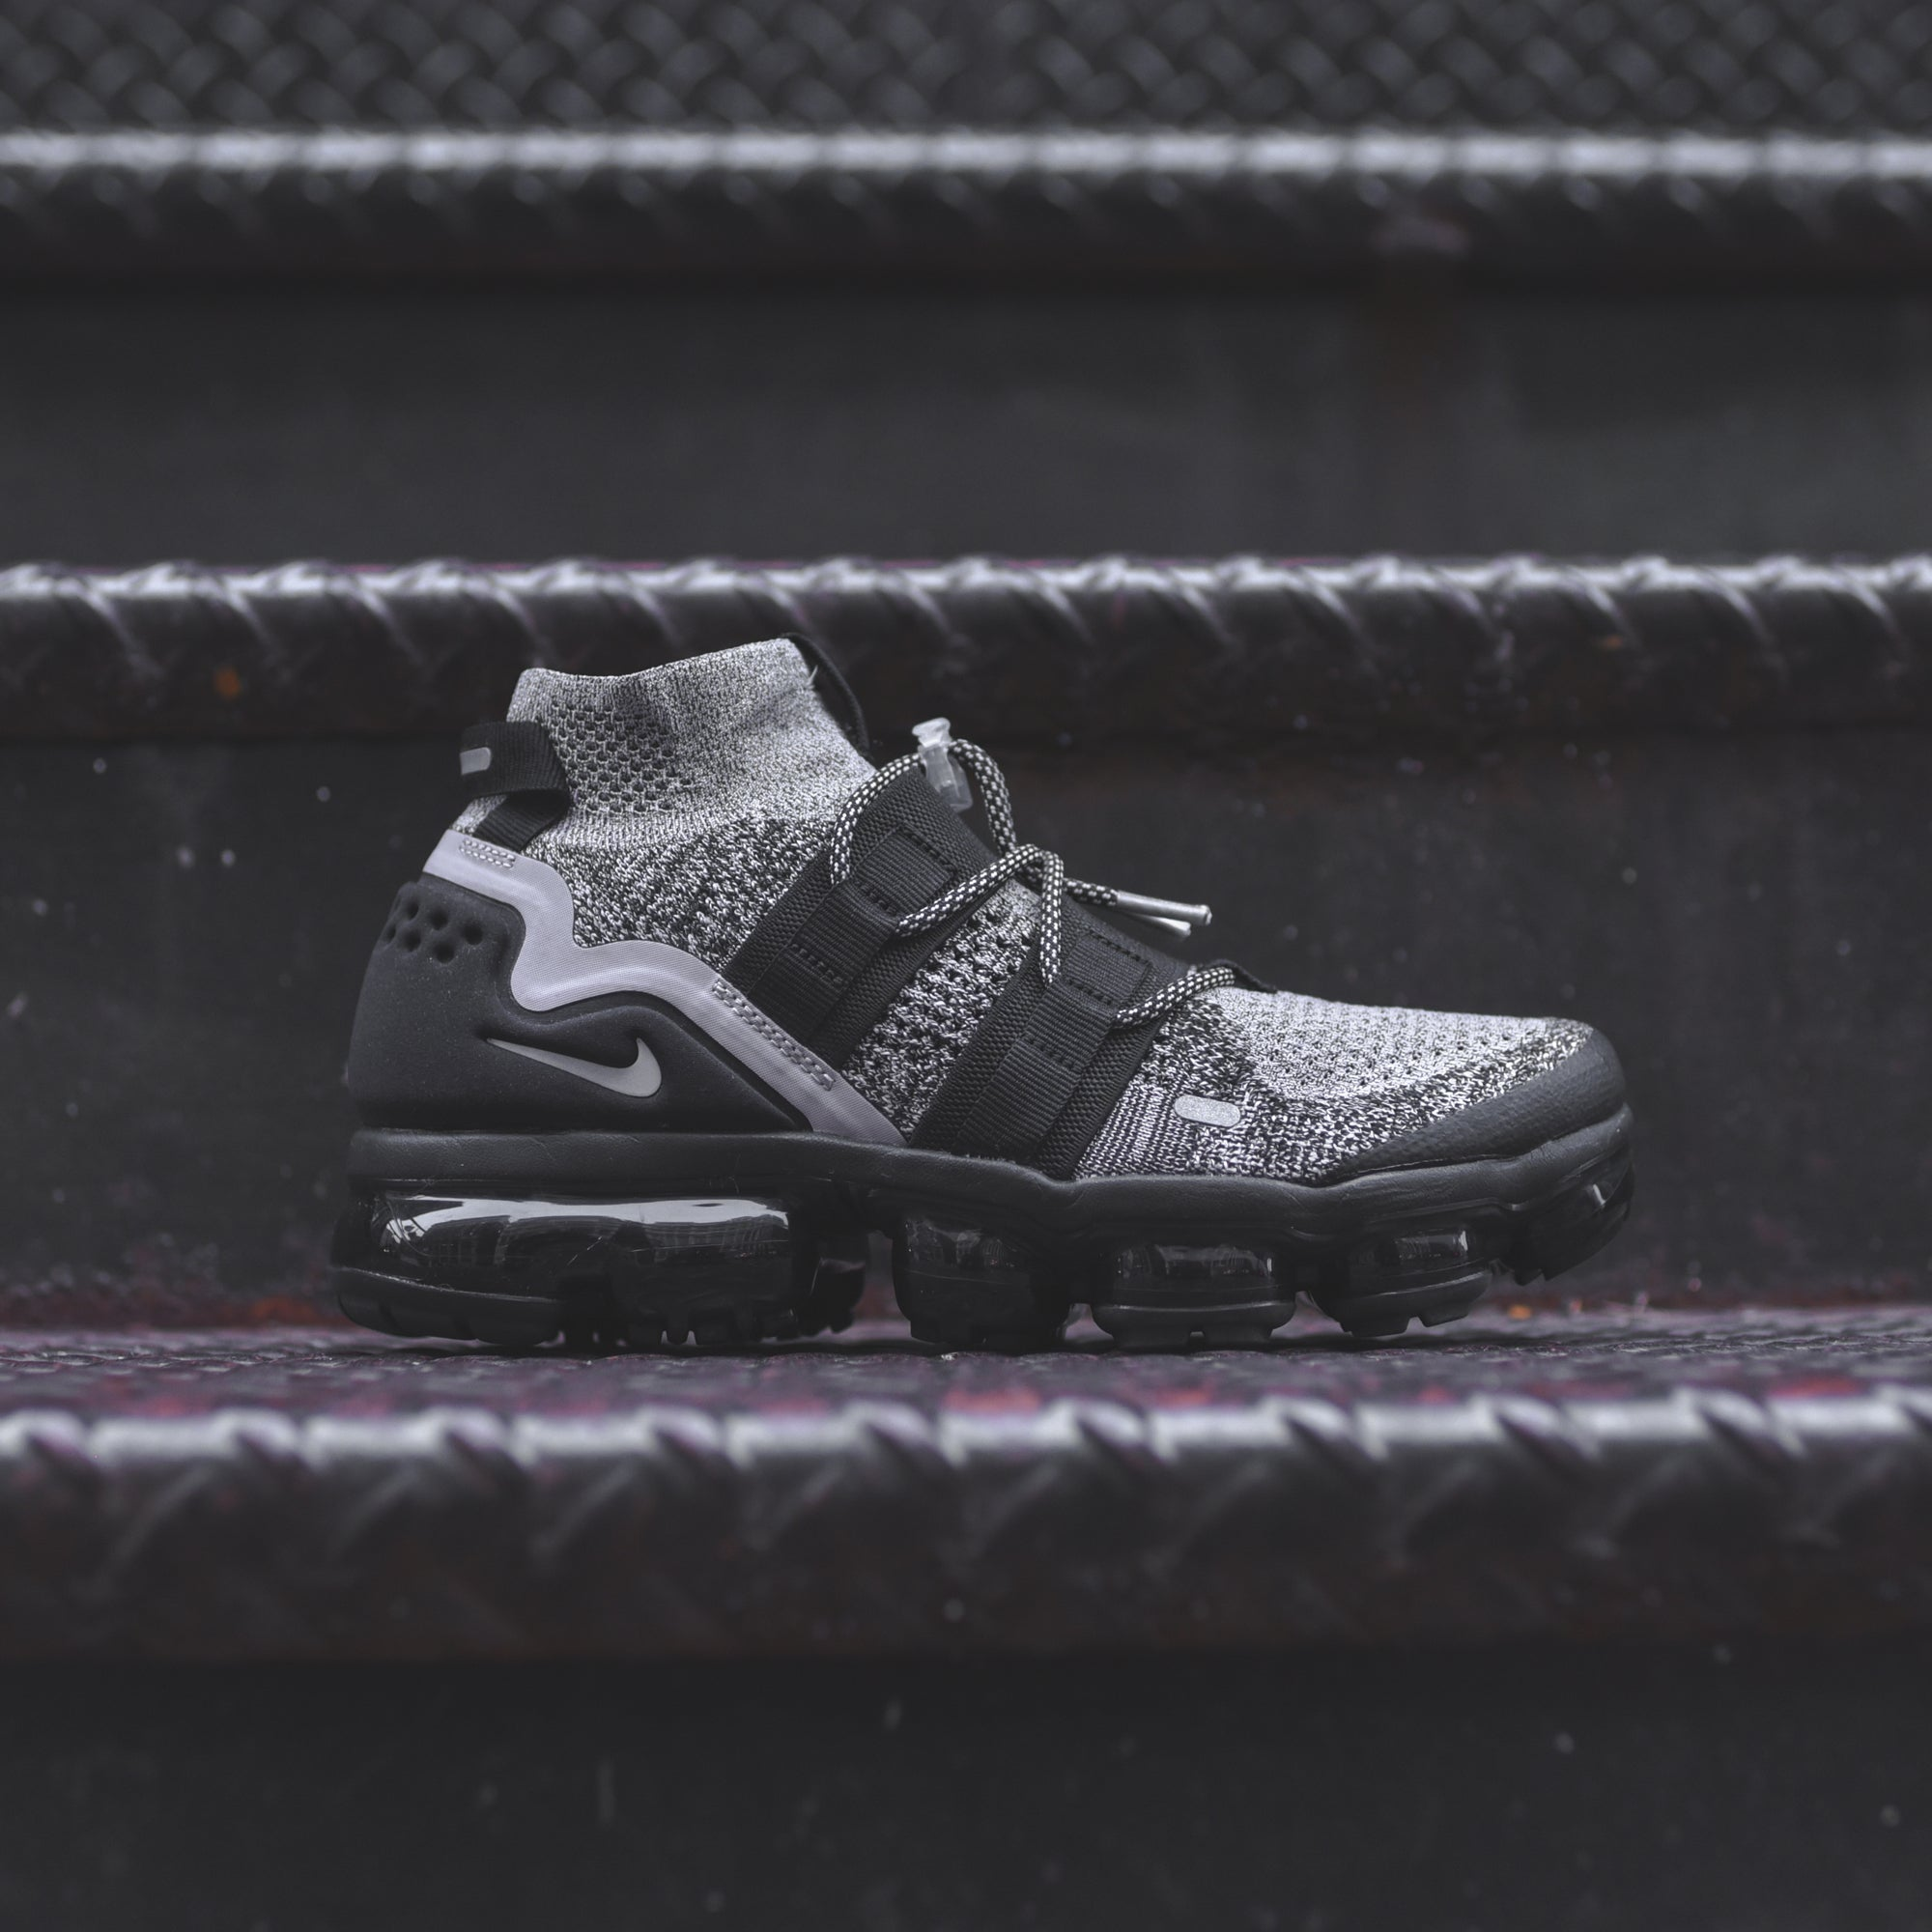 info for a55d0 c84e1 Nike Air Vapormax FK Utility Moon Particle AH6834 201 2363.jpg v 1543271518